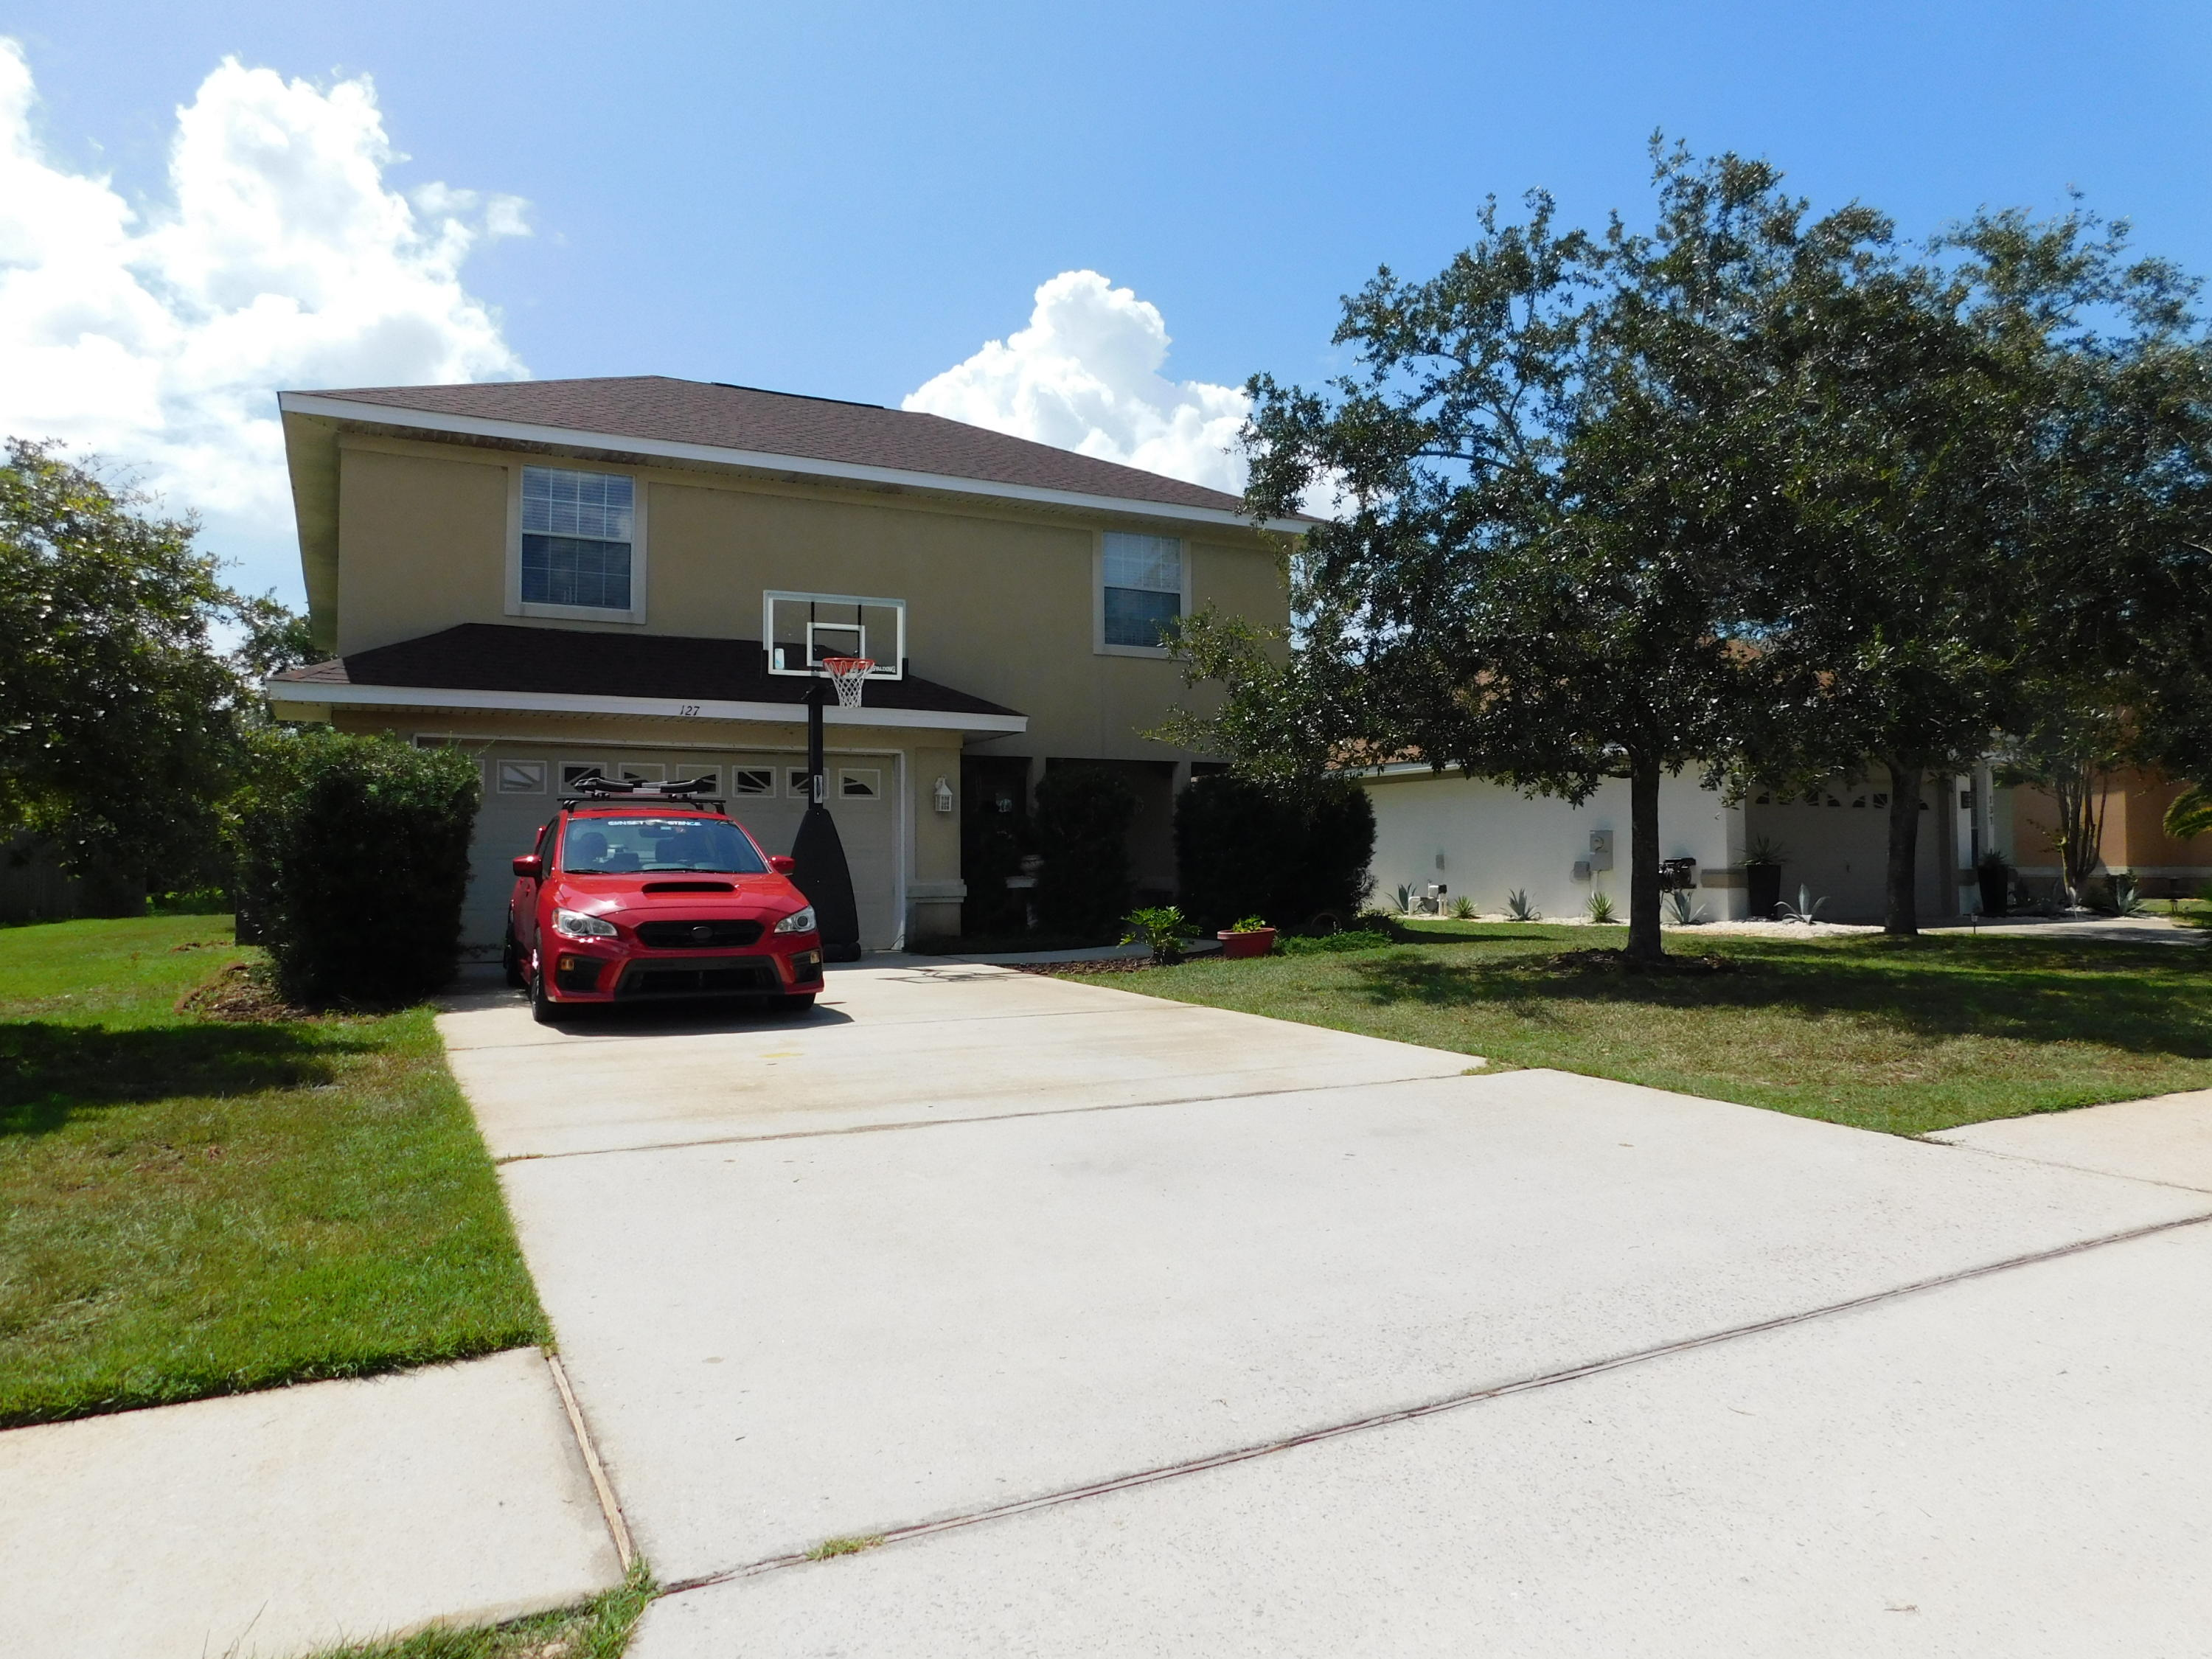 Photo of home for sale at 127 Loblolly Bay, Santa Rosa Beach FL